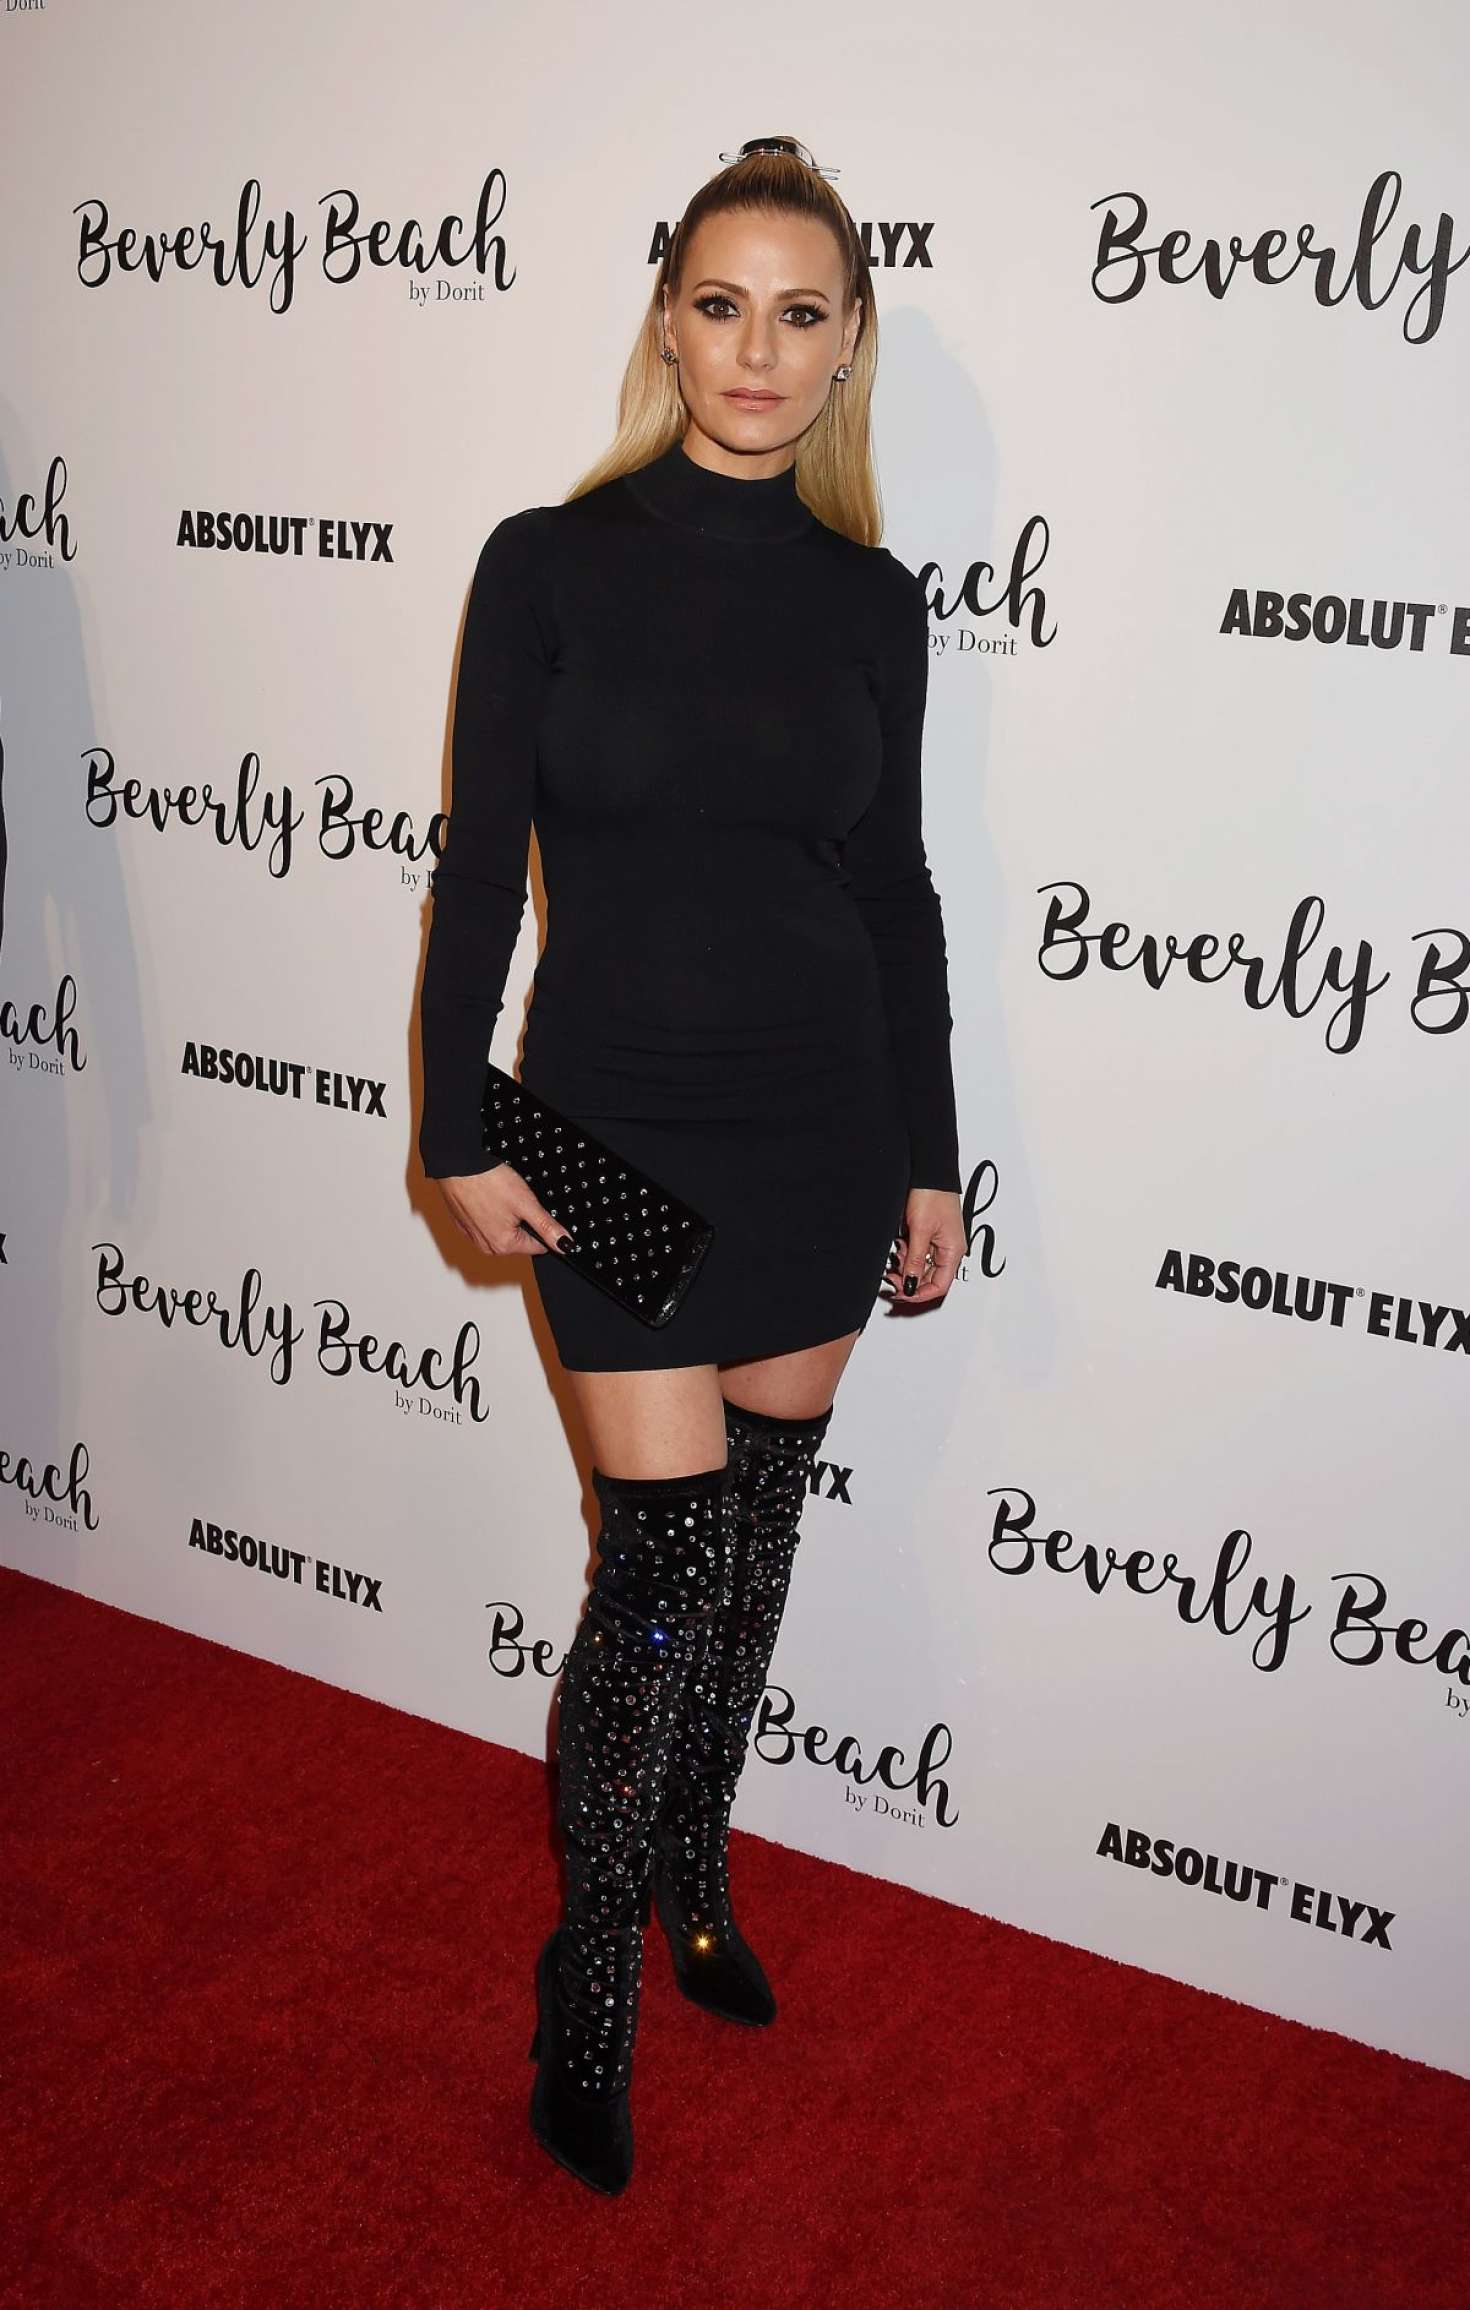 Dorit Kemsley - Dorit Kemsley Hosts Preview Event For Beverly Beach By Dorit in Culver City